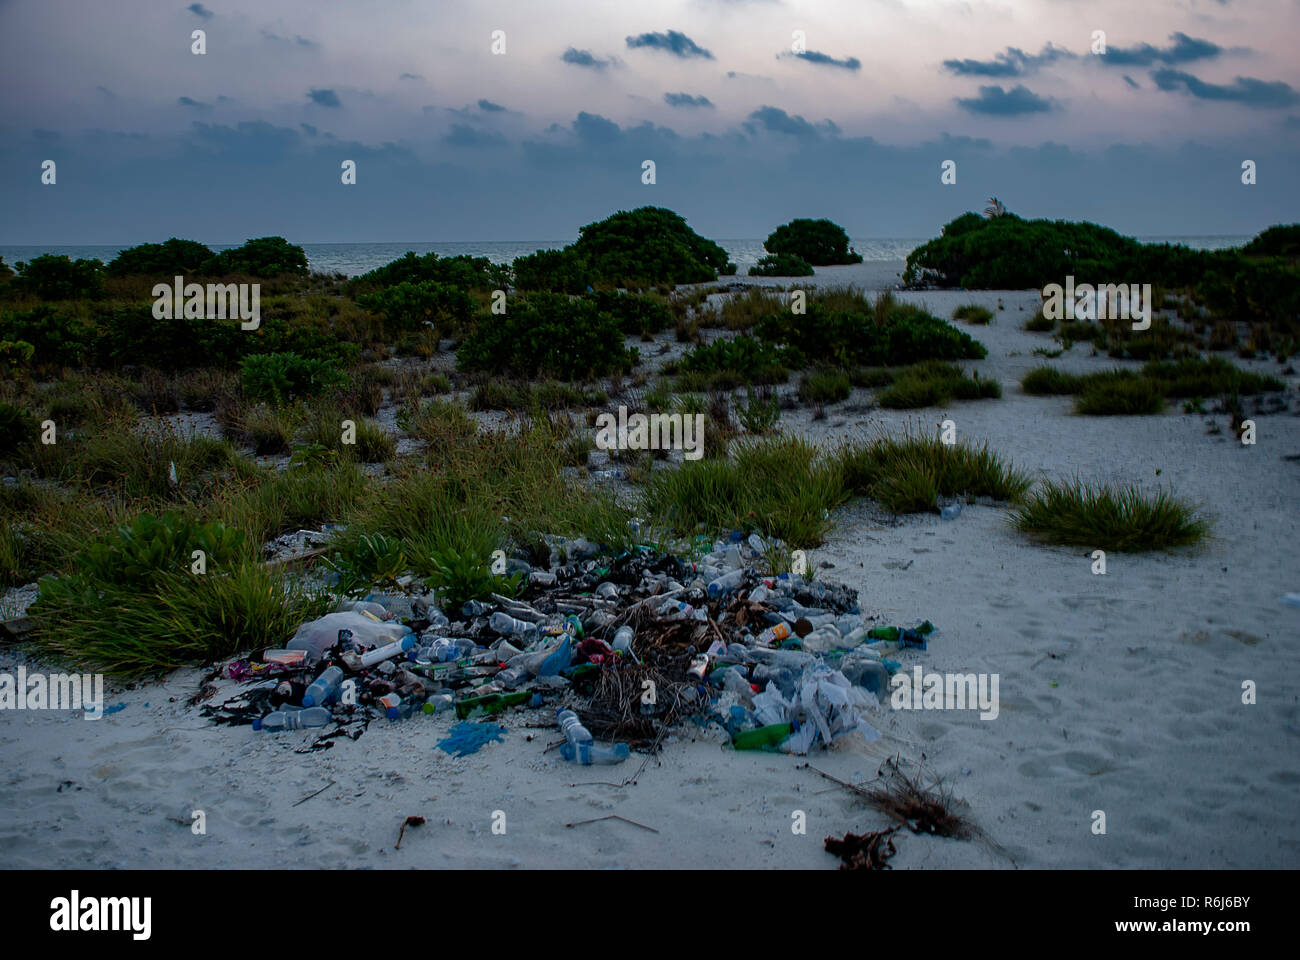 Litter on a tropical uninhabited island in the Indian Ocean - Stock Image